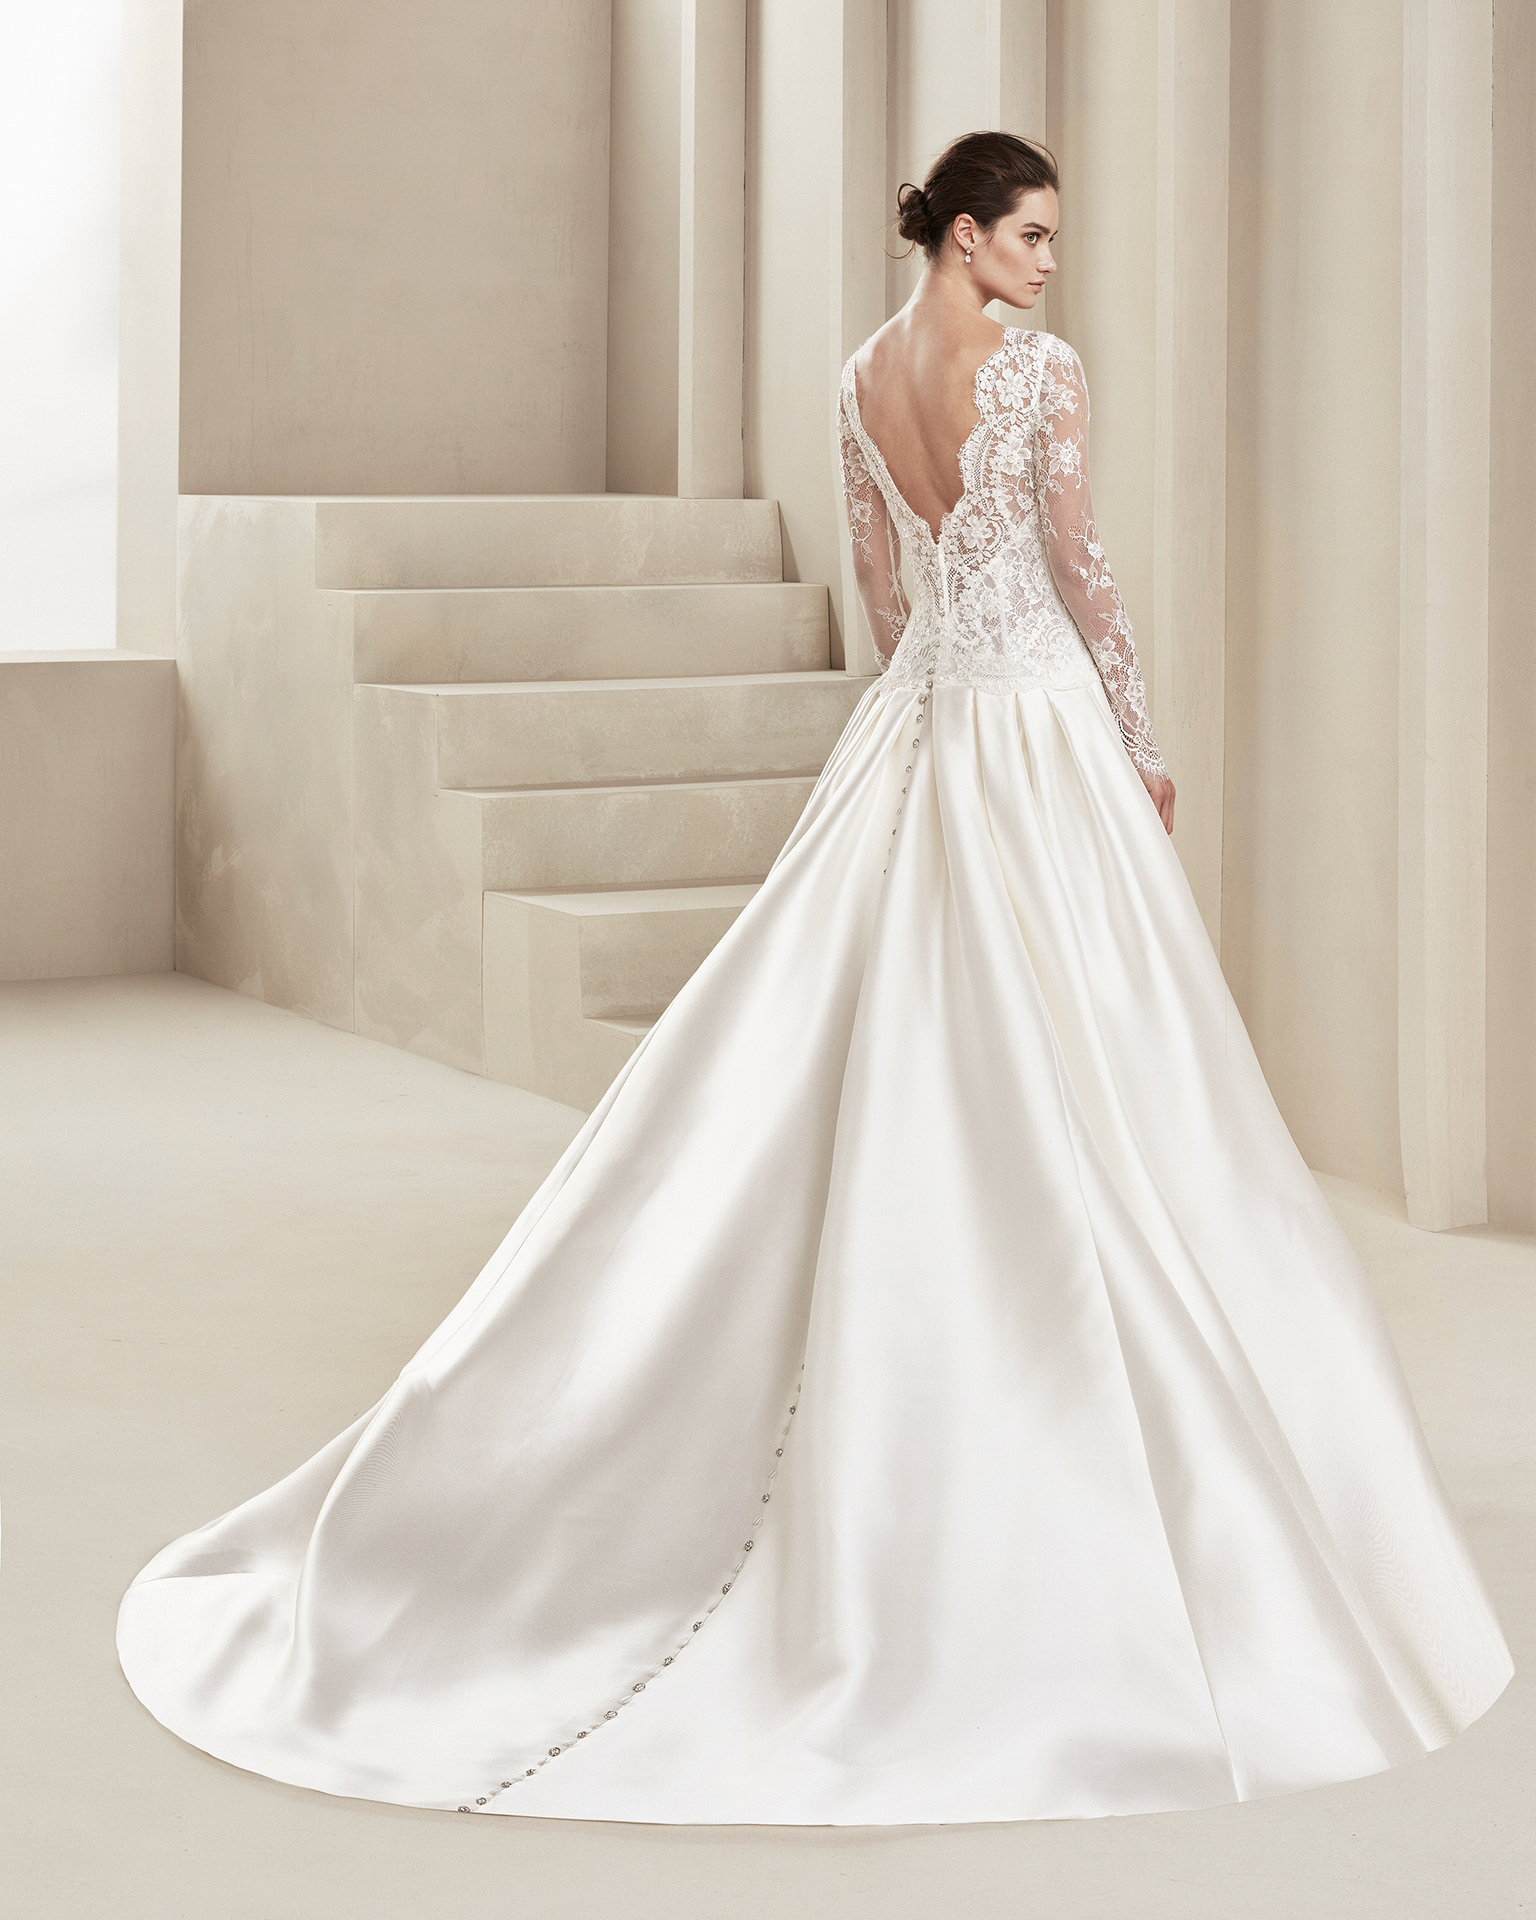 Classic wedding dress in tammy and beaded lace. With deep-plunge neckline, low back and long lace sleeves. With train. Available in natural. 2019 ALMANOVIA Collection.